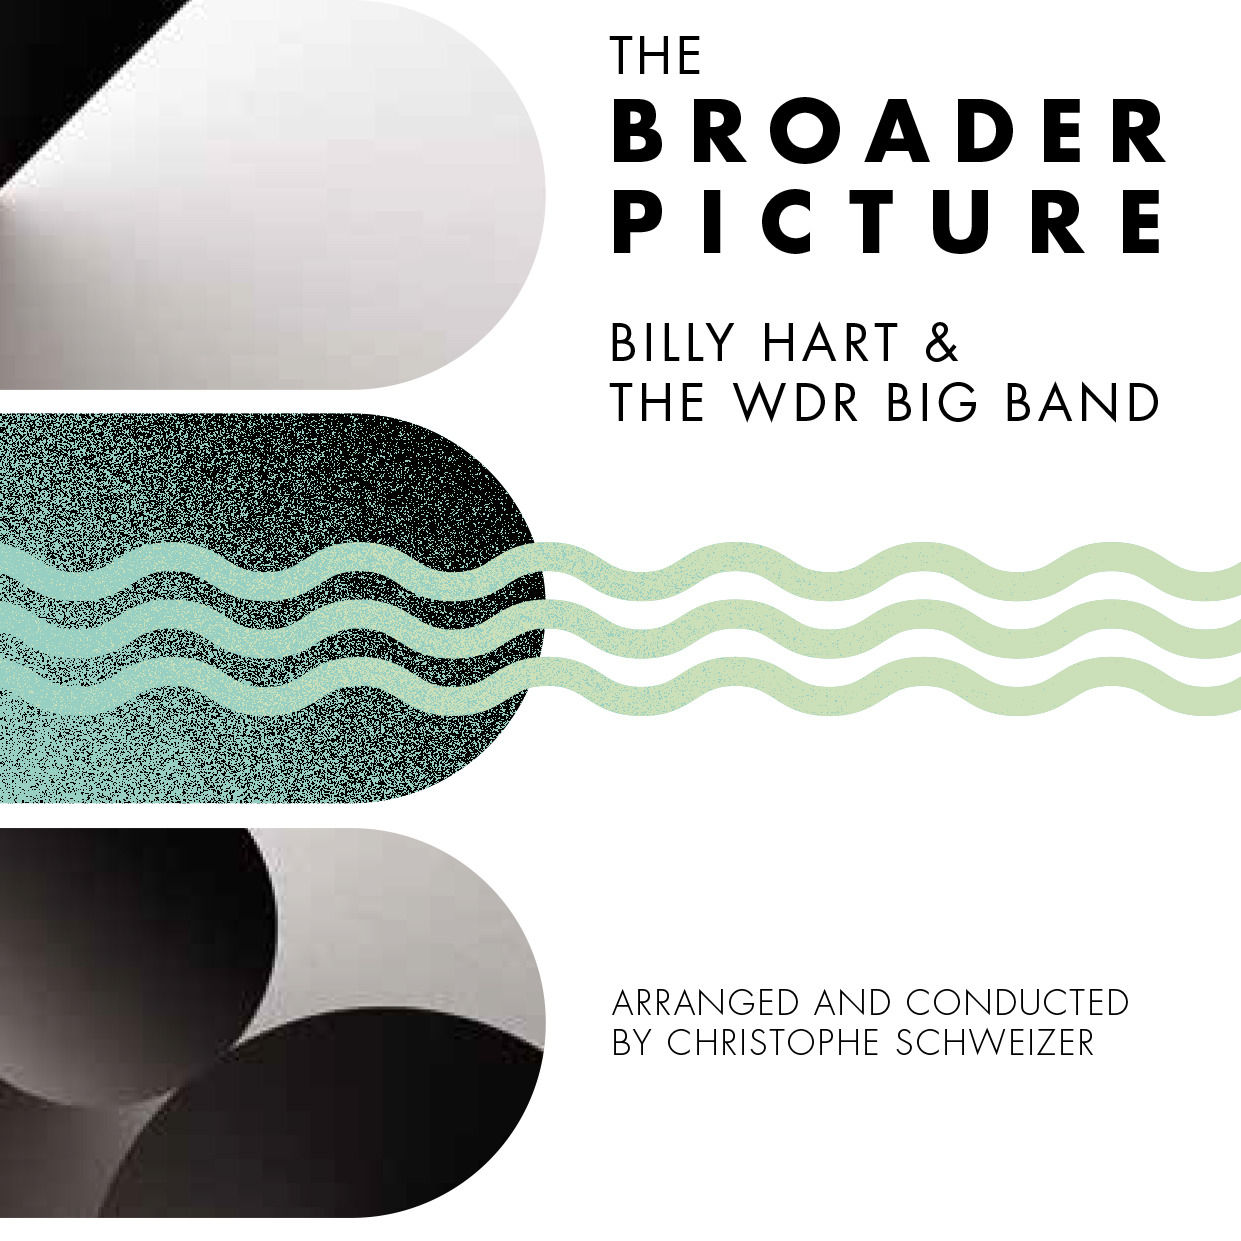 Bill Hart & WDR Big Band</br>The Broader Picture</br>Enja, 2016